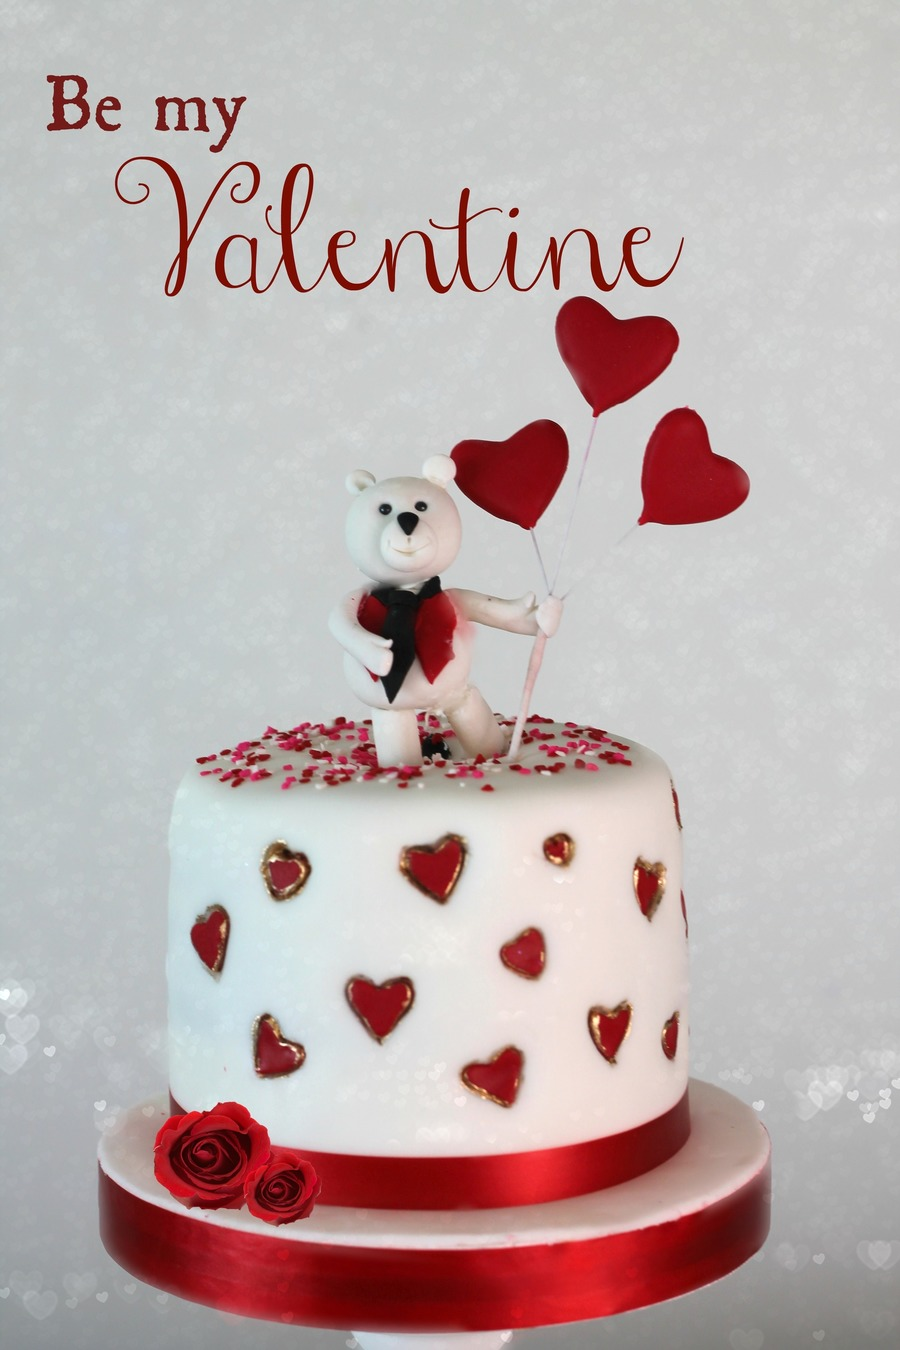 Happy Valentines!!!!! on Cake Central